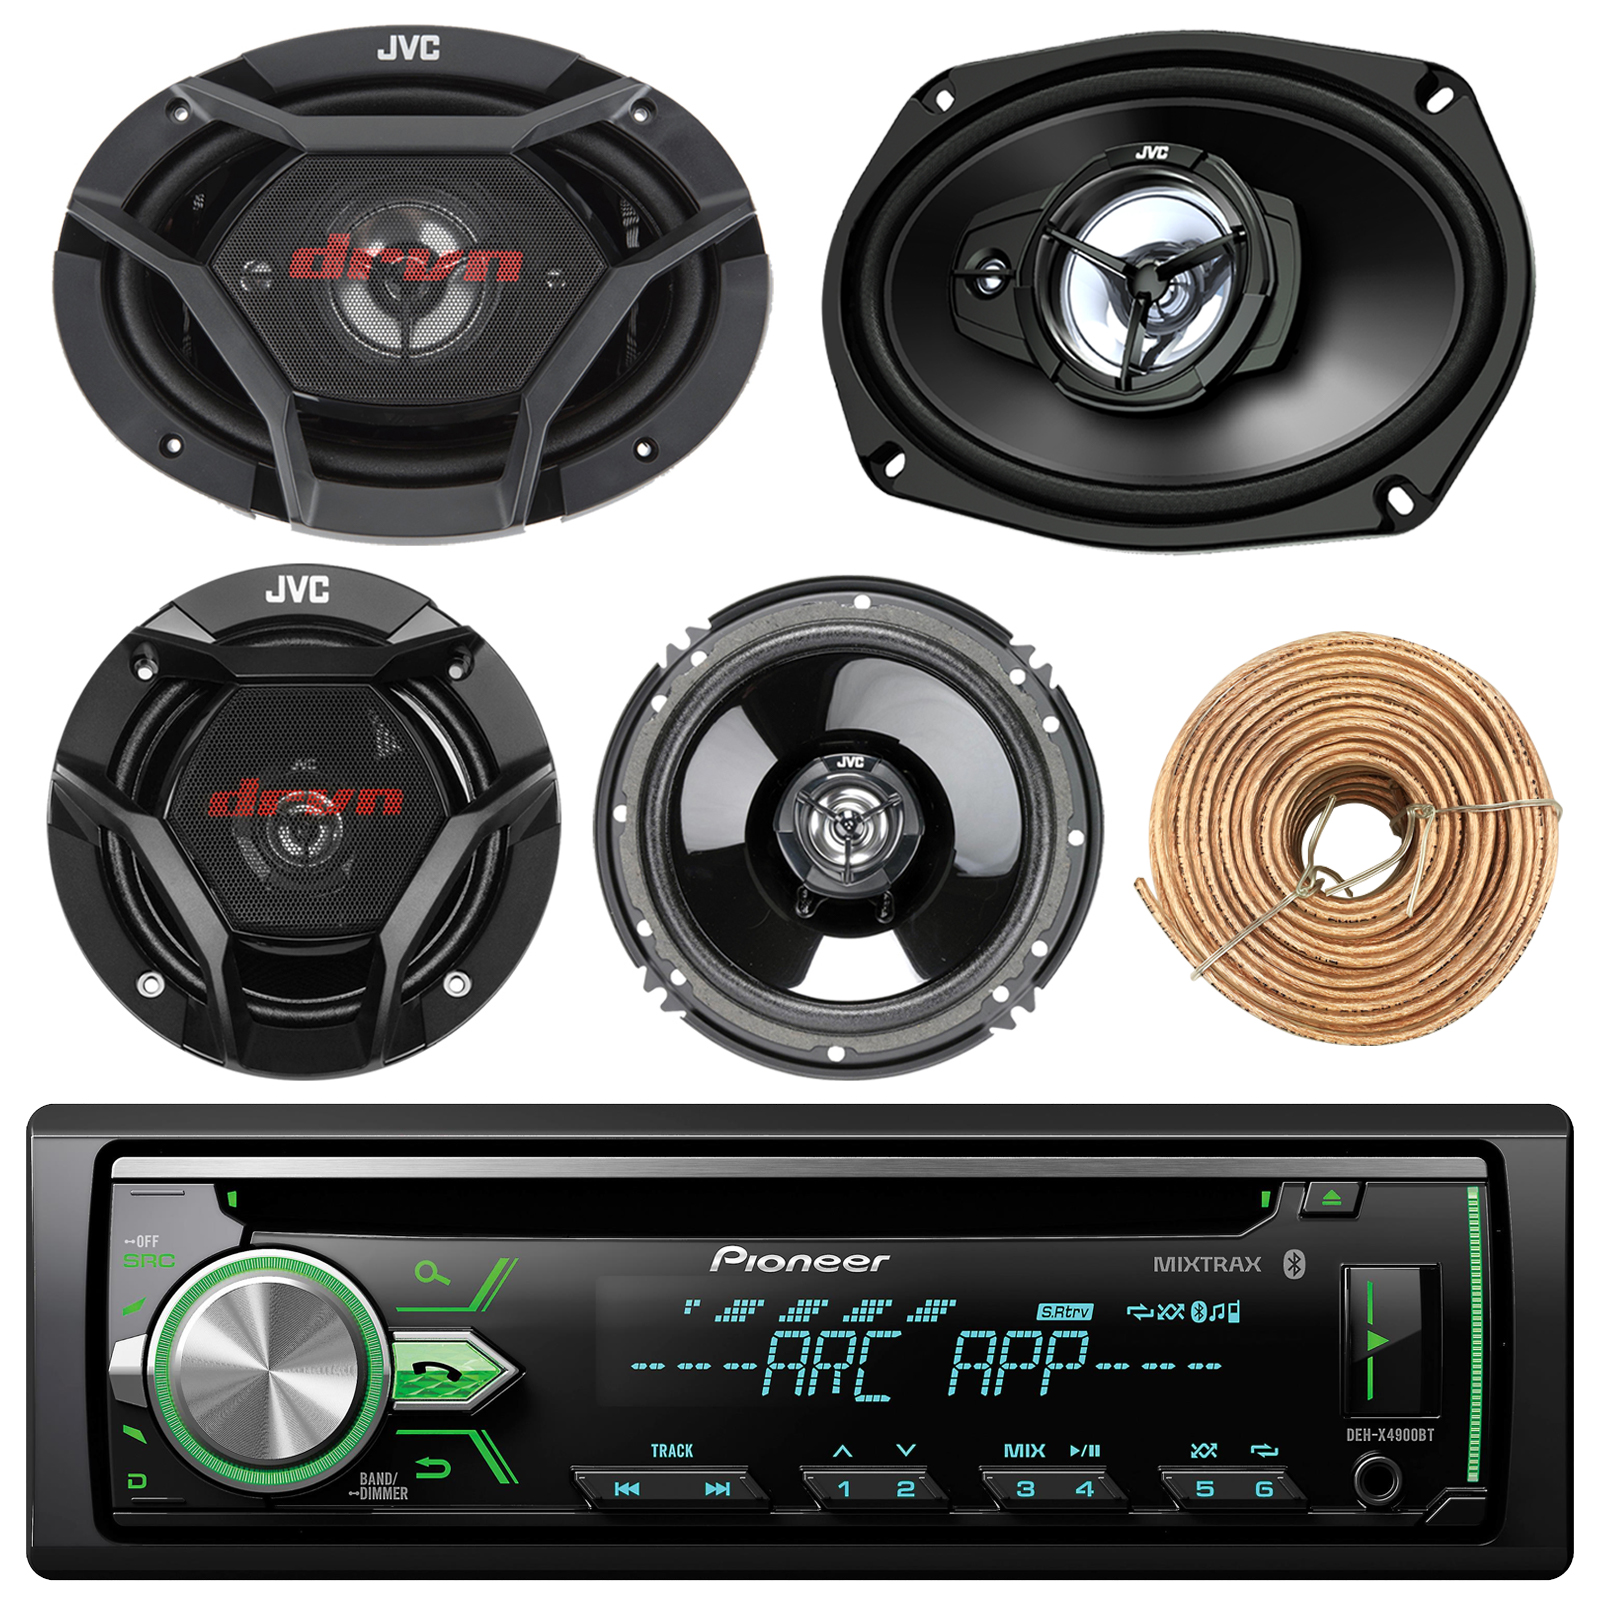 "Pioneer DEH-X4900BT Car Bluetooth Radio USB AUX CD Player Receiver - Bundle Combo With 2x JVC 6x9"" 3-Way Vehicle Coaxial Speakers + 2x 6.5"" Inch 2-Way Audio Speakers + Enrock 50 Ft 18G Speaker Wire"